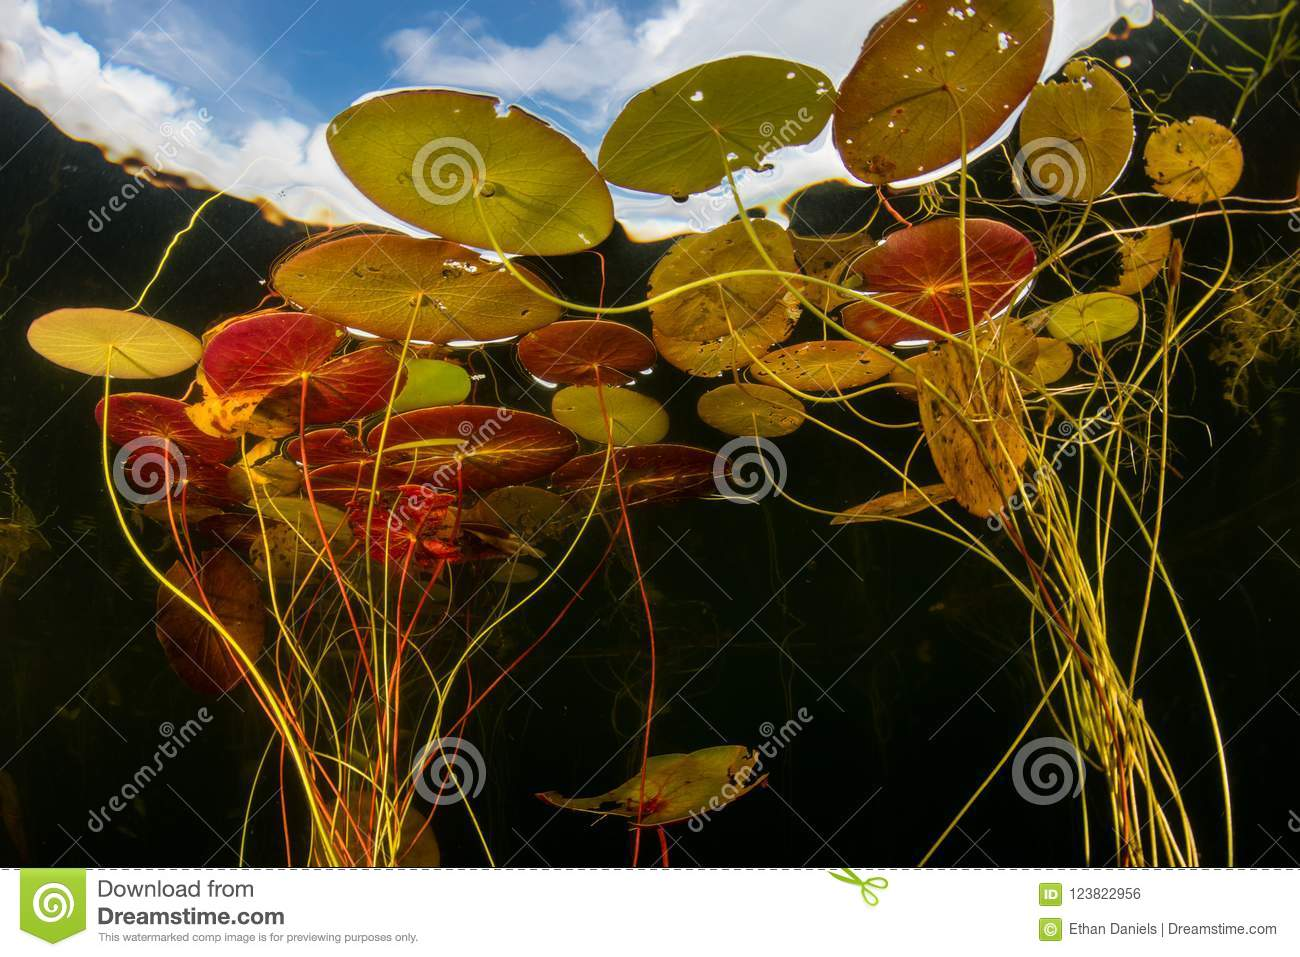 Colorful Lily Pads in New England Lake